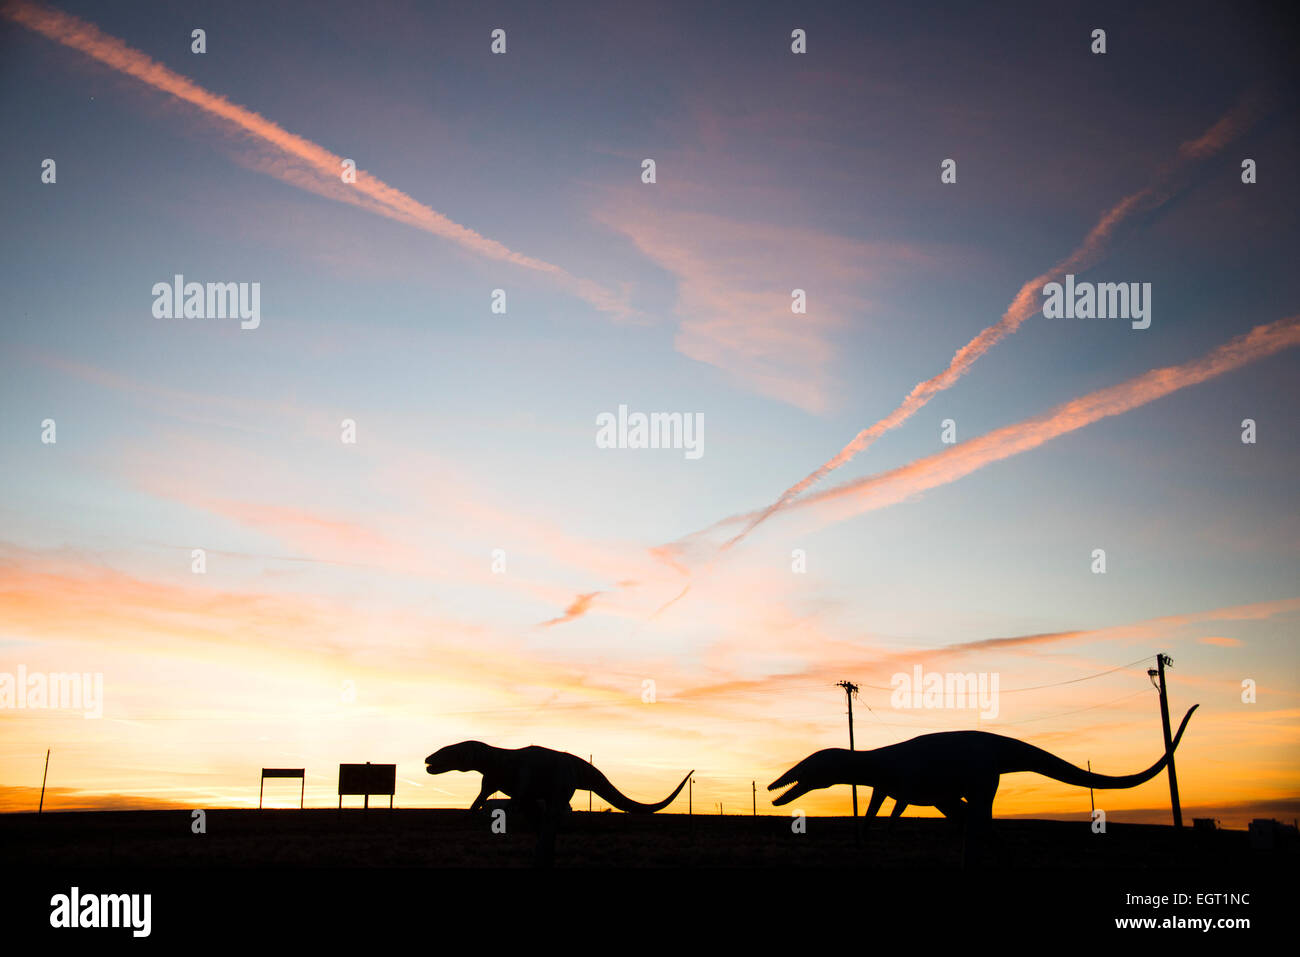 Giant raptor dinosaur figures silhouetted against sunset near Holbrook on Route 66 Arizona, USA - Stock Image